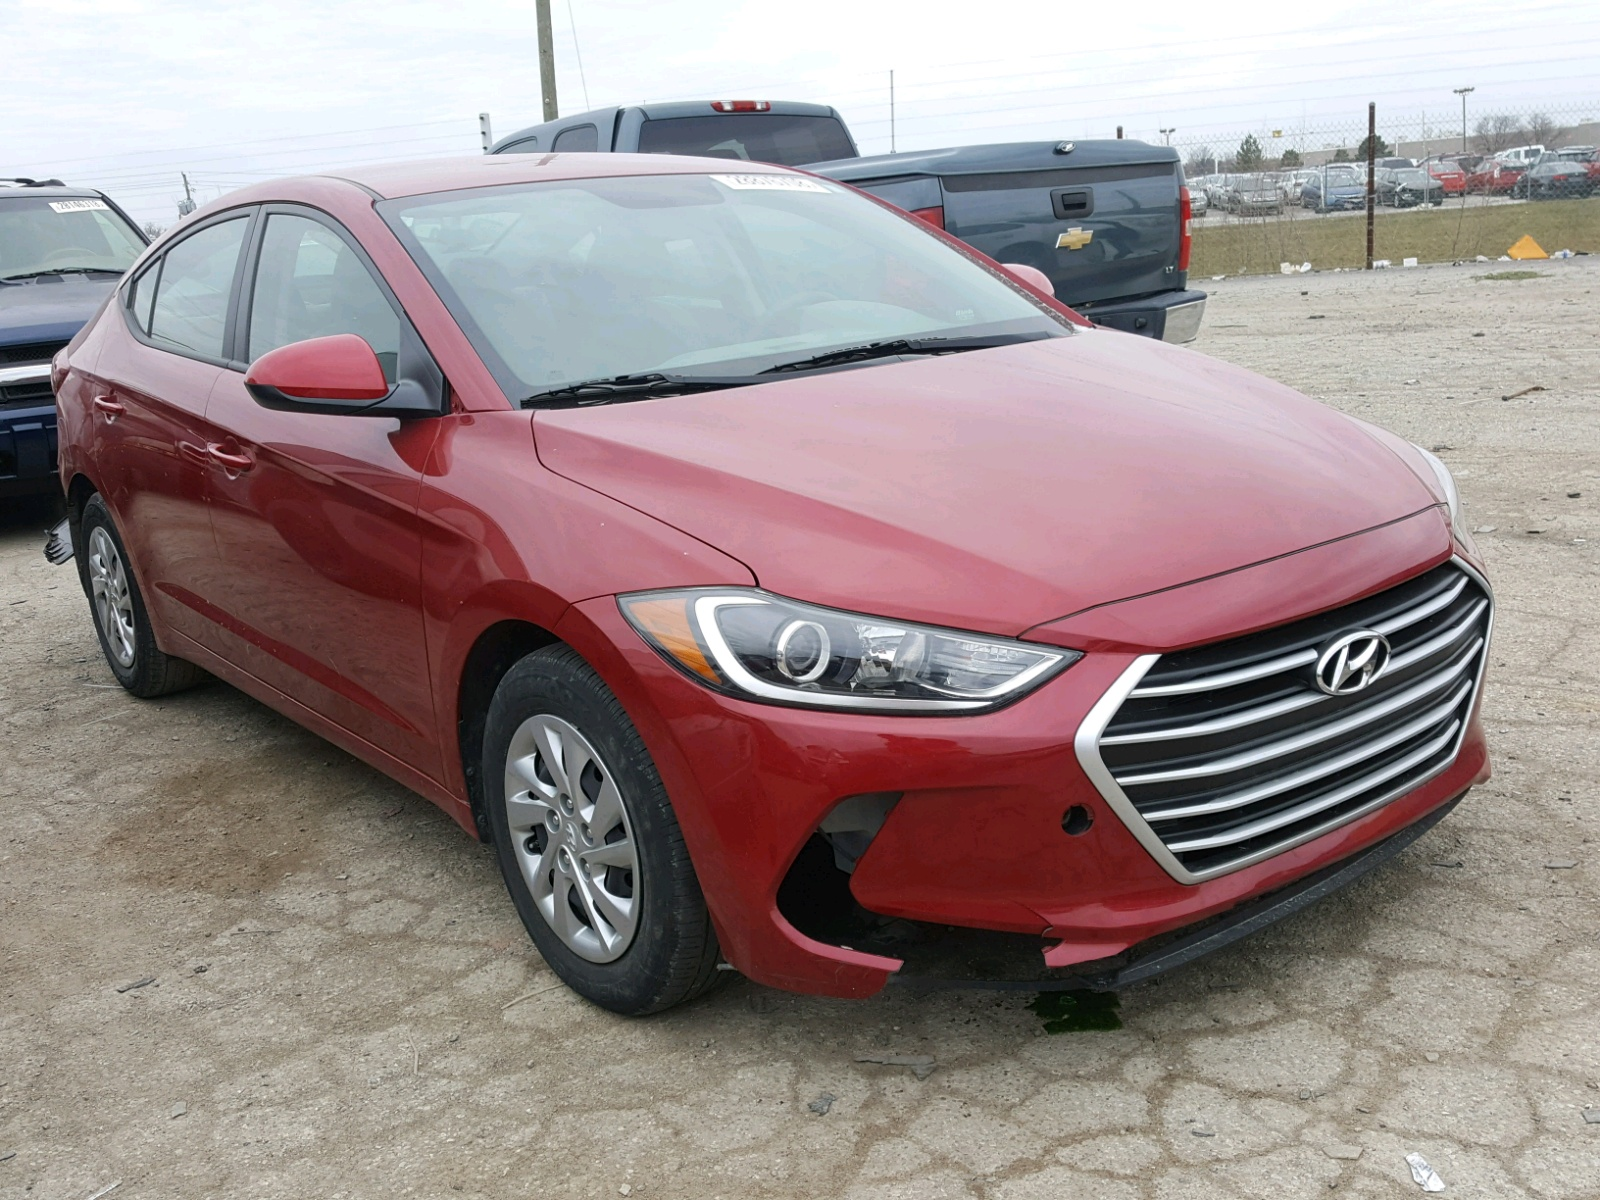 se on sale title lot salvage indianapolis hyundai white view copart online in auto sonata en carfinder auctions of cert left